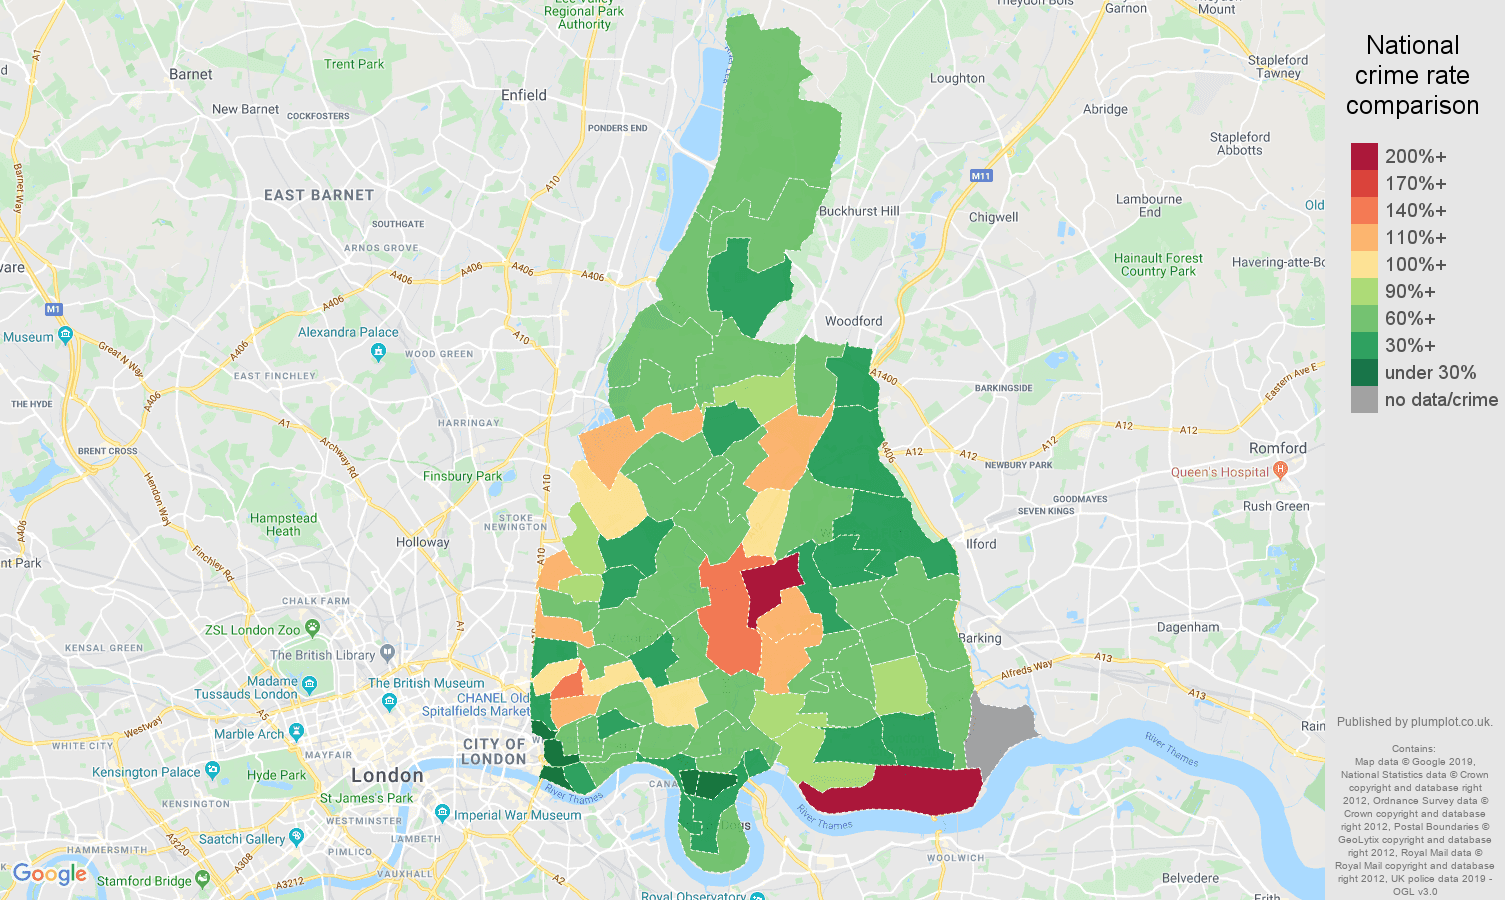 East London other crime rate comparison map